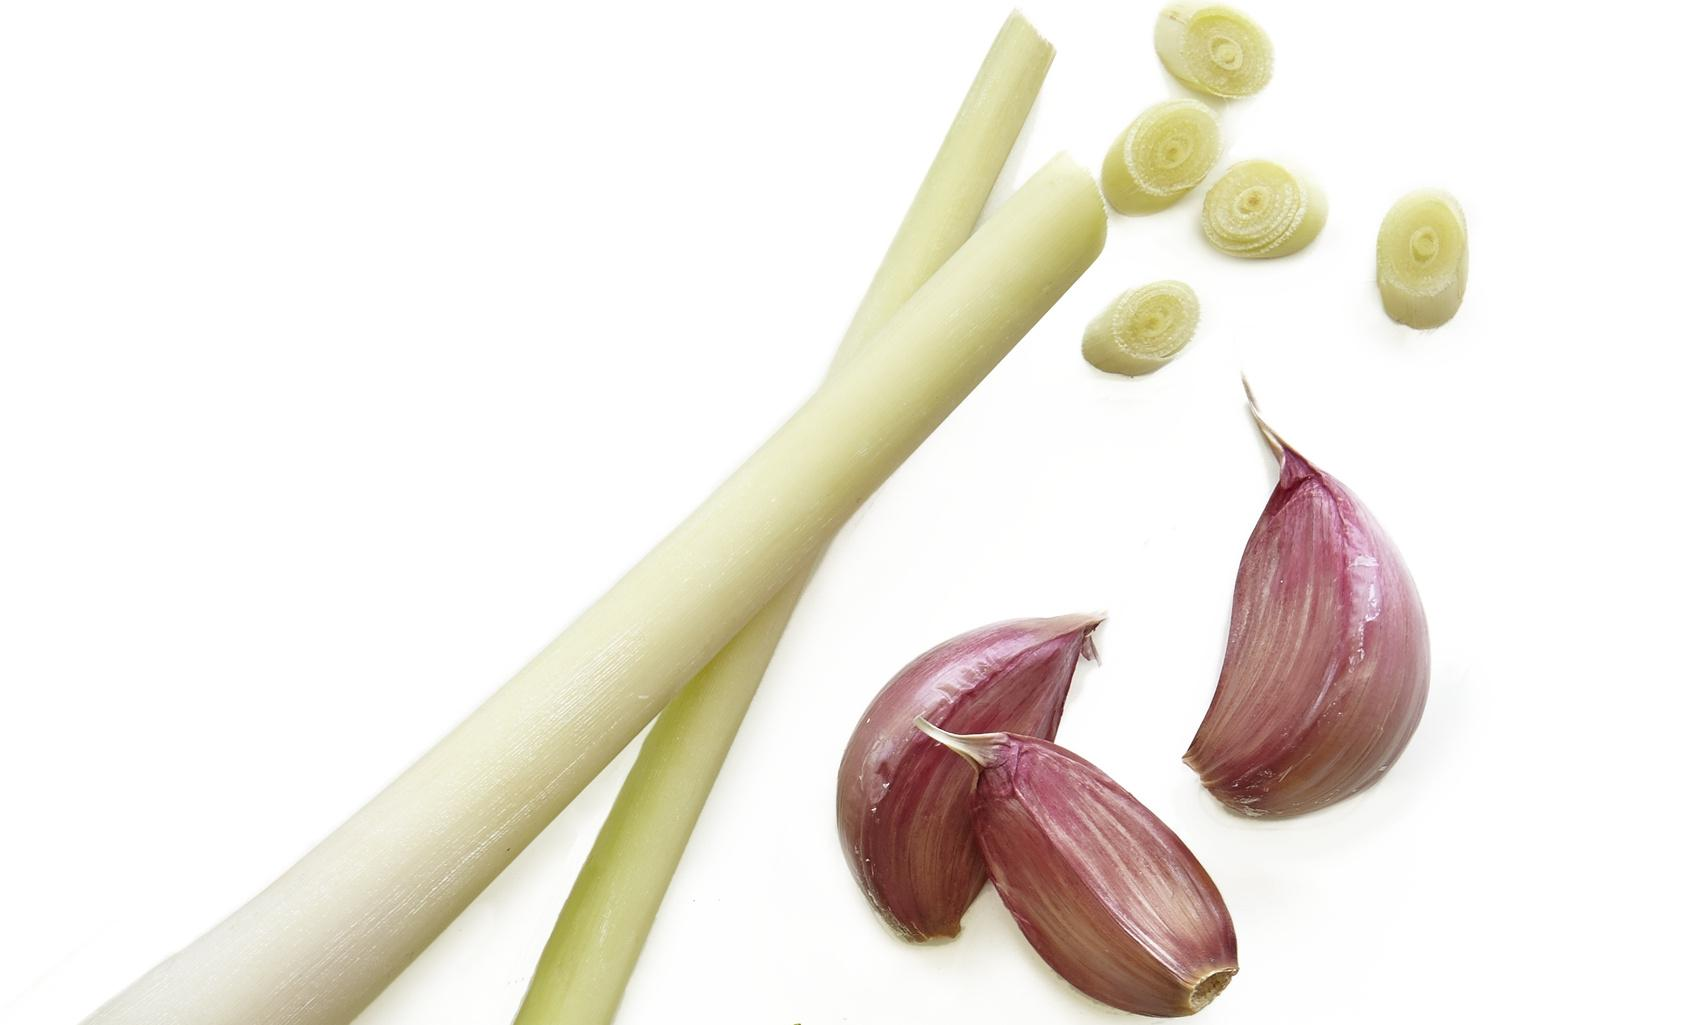 Lemongrass: an integral aromatic with some furry grey fans